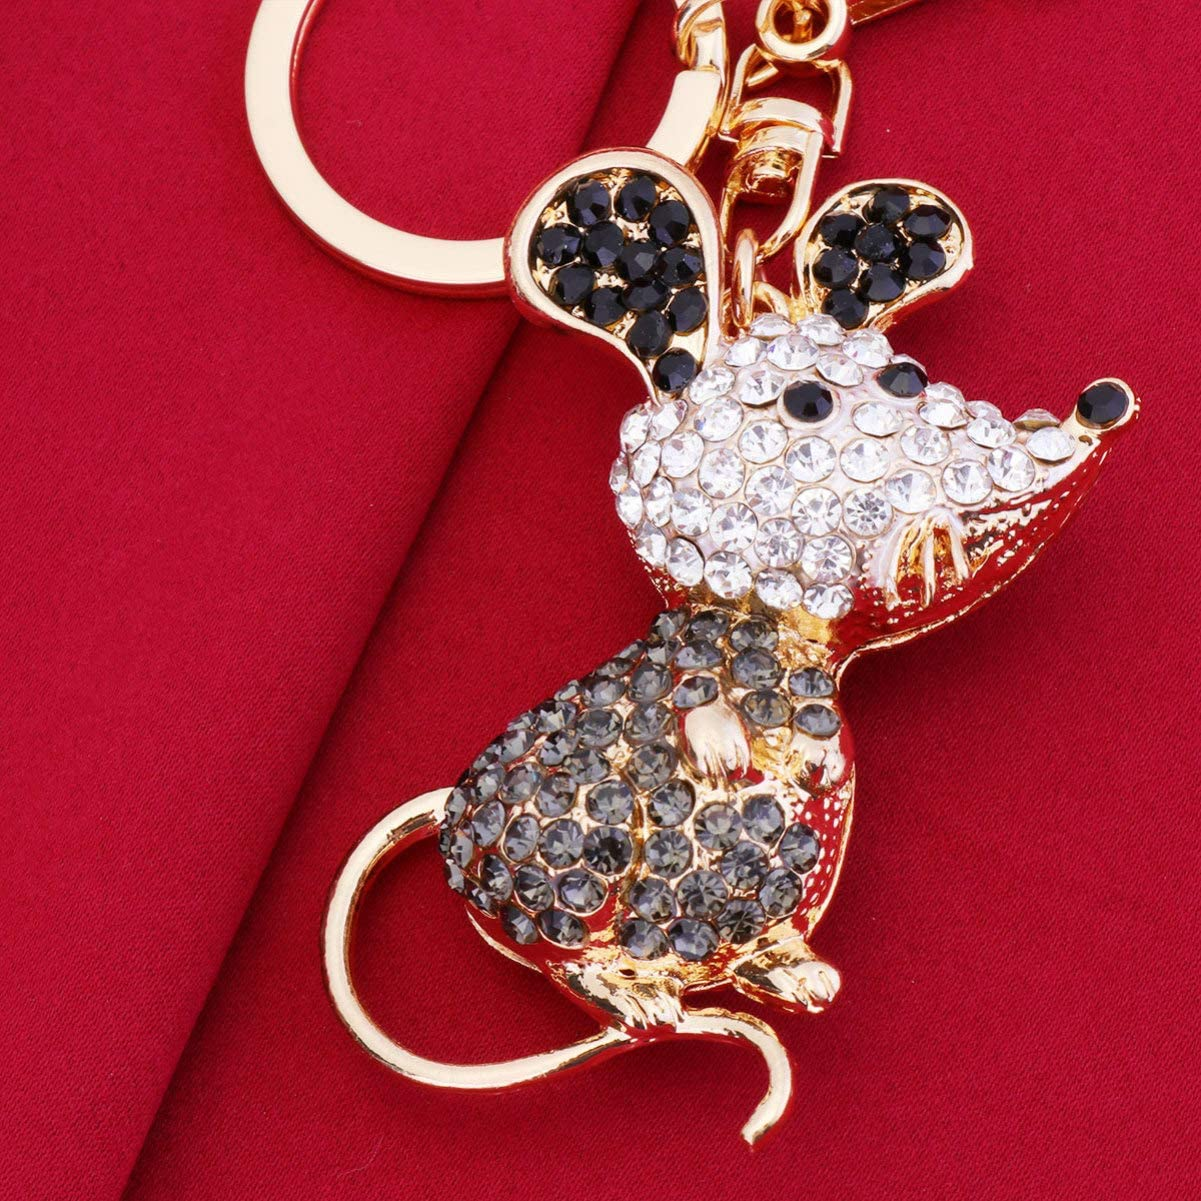 Black 1 Amosfun Mouse Rat Keychain Keyring Crystal Rhinestone Keyring Alloy Chinese Zodiac Charms Keychain Happy Lunar New Year Party Gifts for Kids Woman